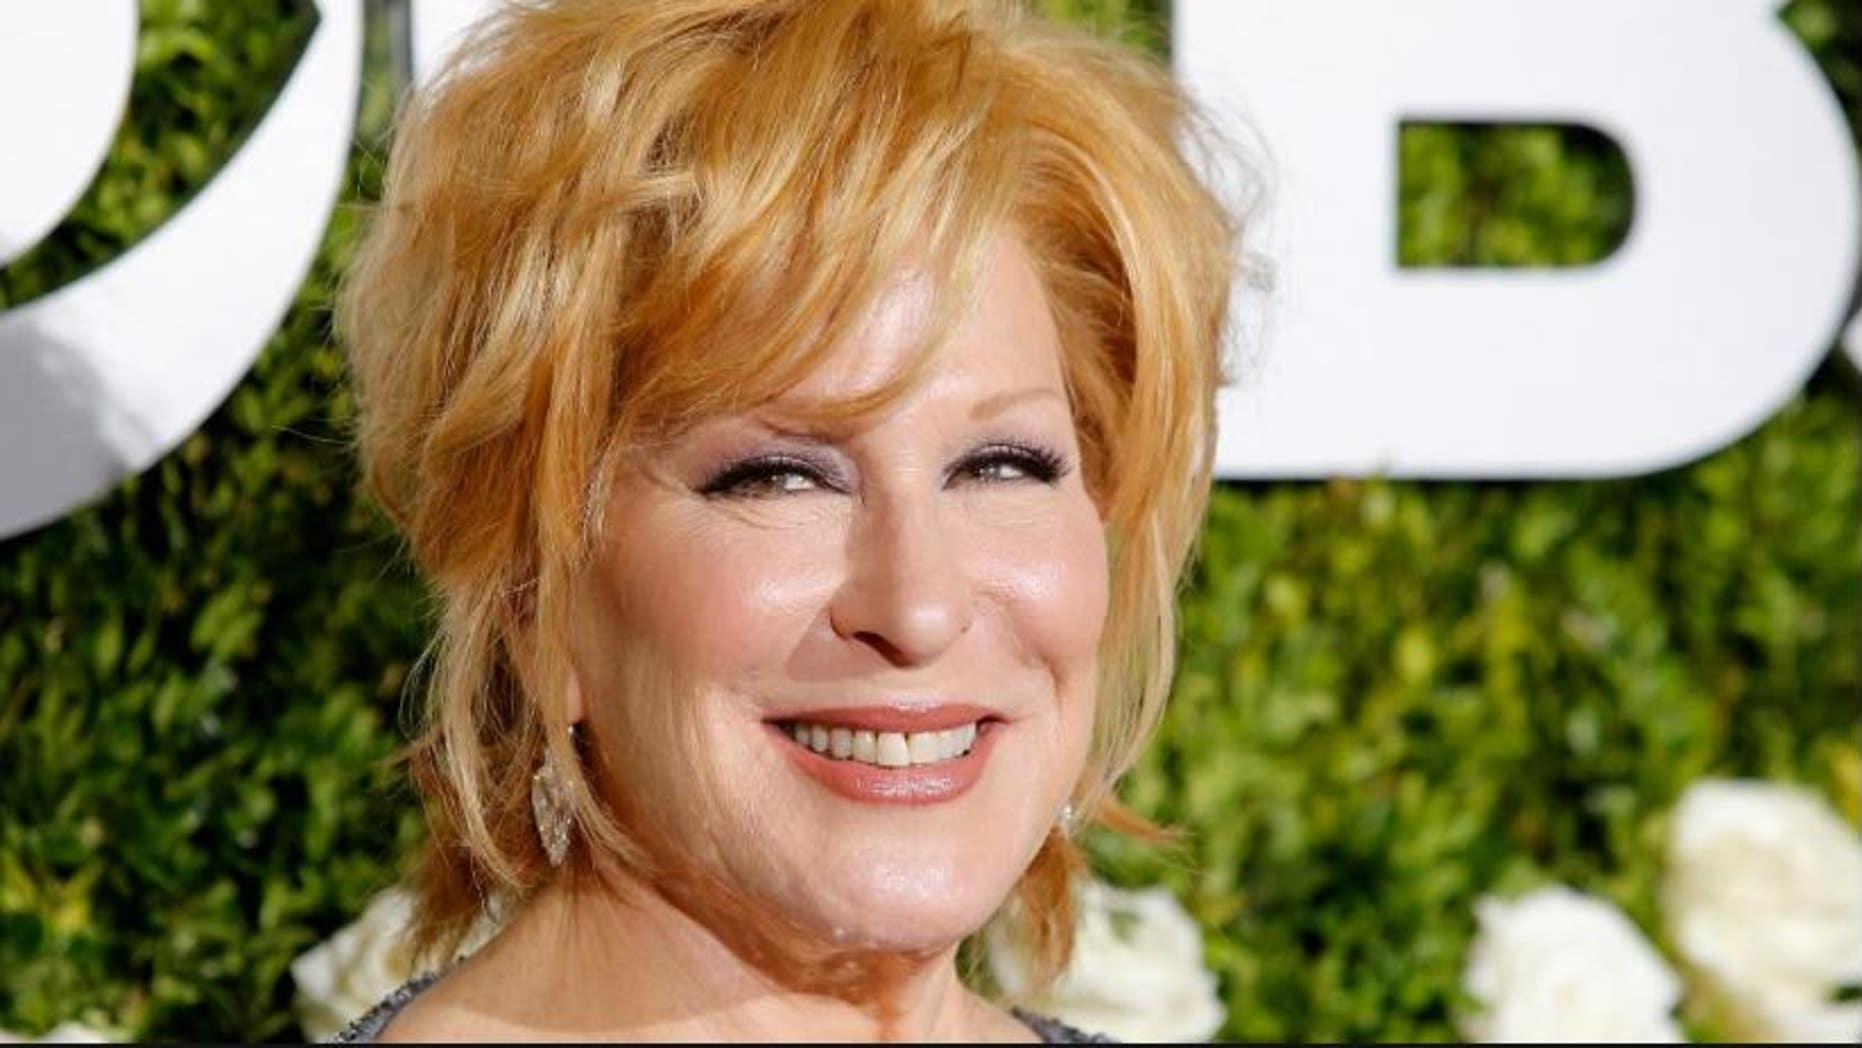 Bette Midler nudes (22 photos), Topless, Fappening, Twitter, bra 2006